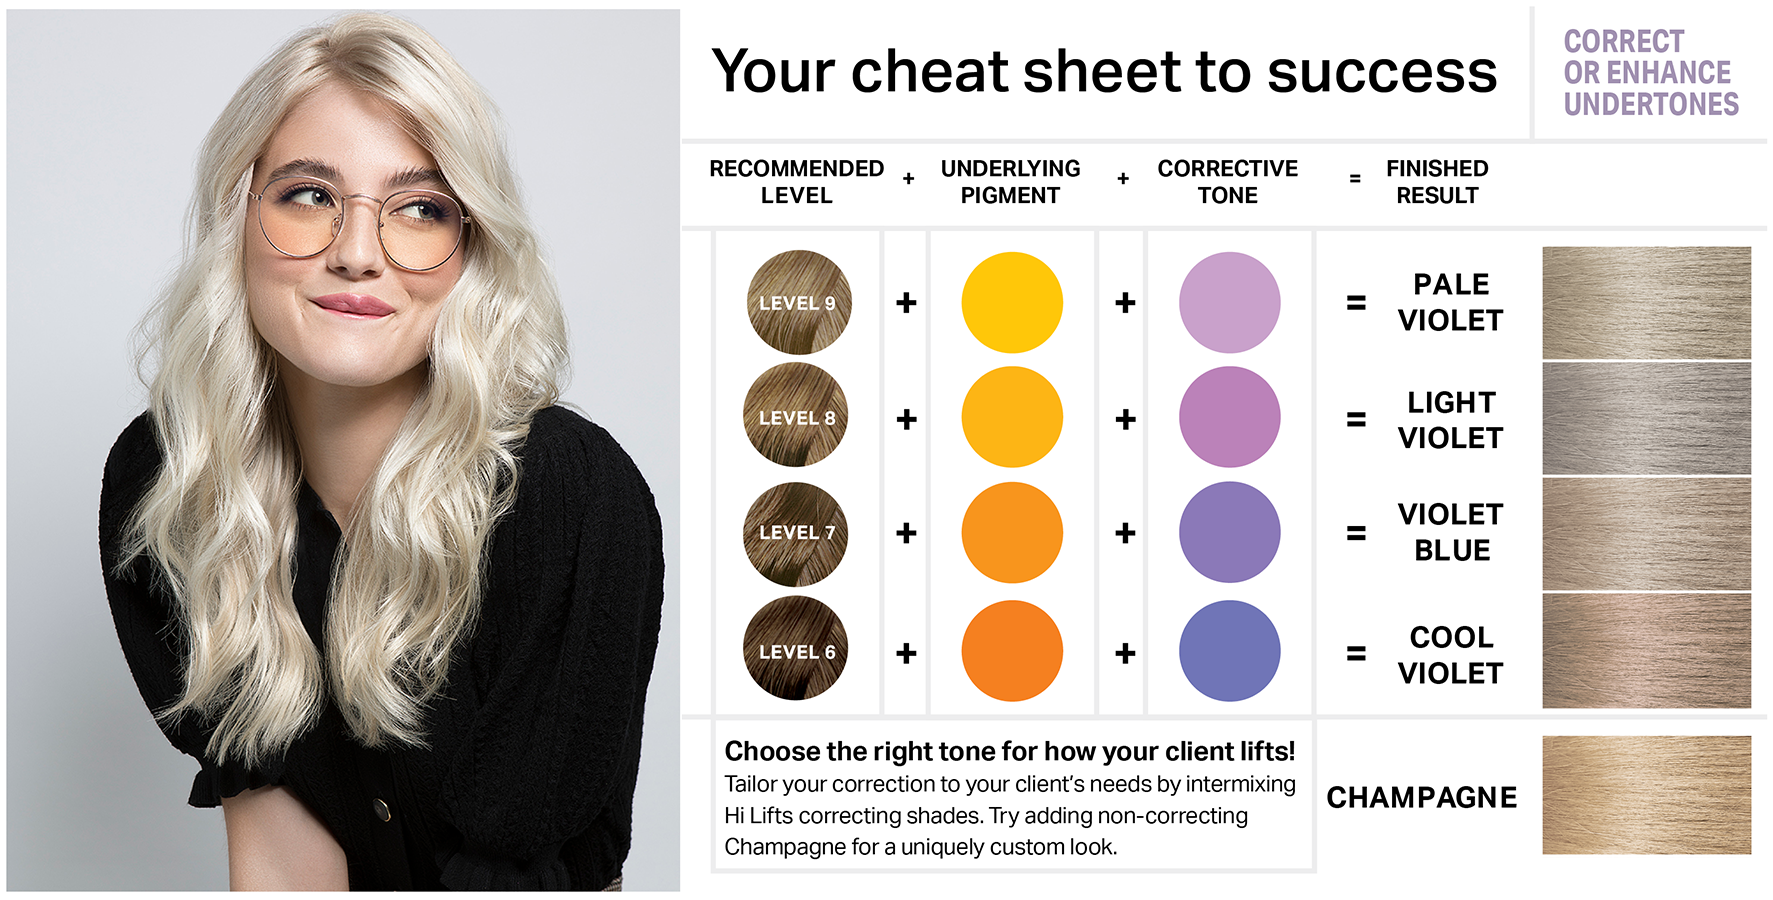 Cheat sheet chart for hi lites coloring. Your cheat sheet to success; correct or enhance undertones. Choose the right tone for how your client lifts! Tailor your correction to your clients needs by intermixing Hi Lifts correcting shades. Try adding non-correcting Champagne for a uniquely custom look.